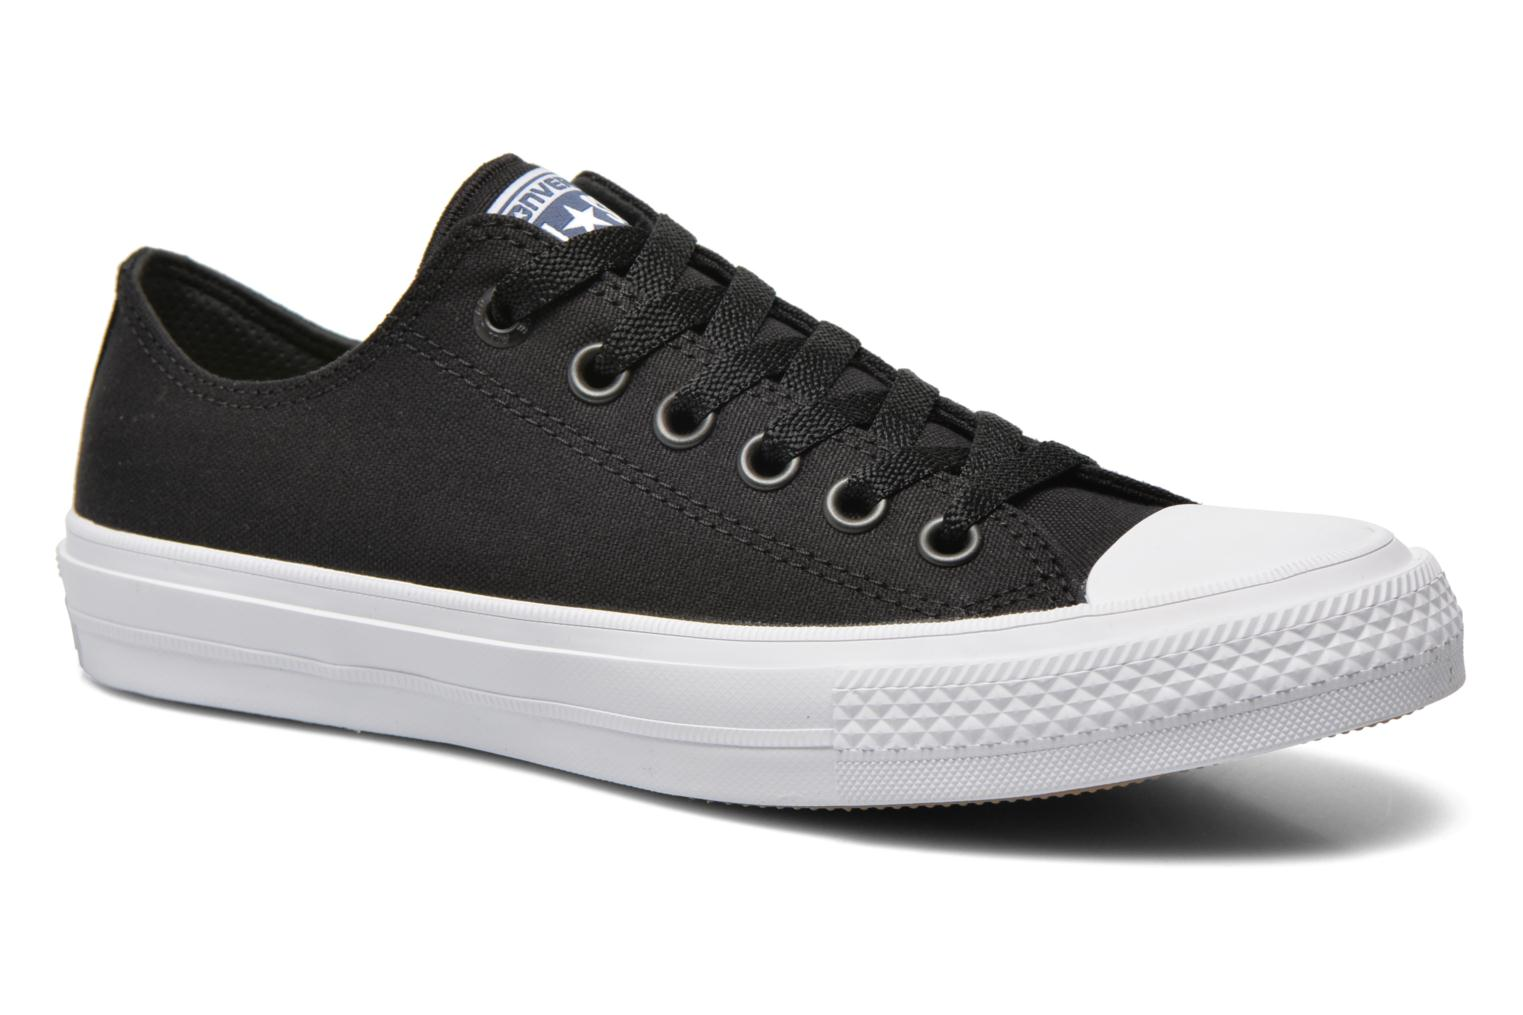 Chuck Taylor All Star II Ox W Black-White-Navy